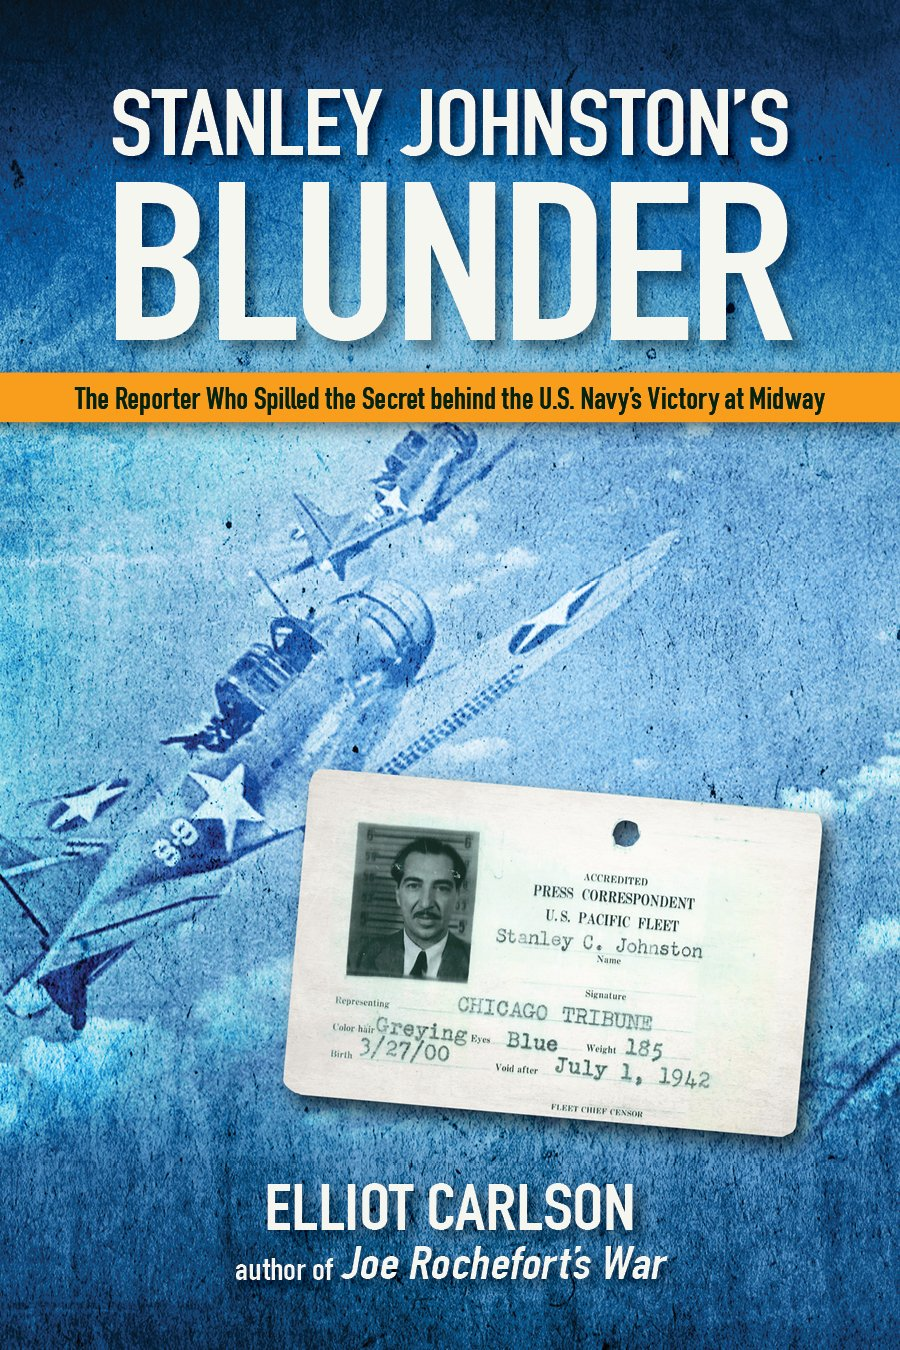 Stanley johnstons blunder the reporter who spilled the secret stanley johnstons blunder the reporter who spilled the secret behind the us navys victory at midway elliot carlson 9781591146797 amazon books fandeluxe Images